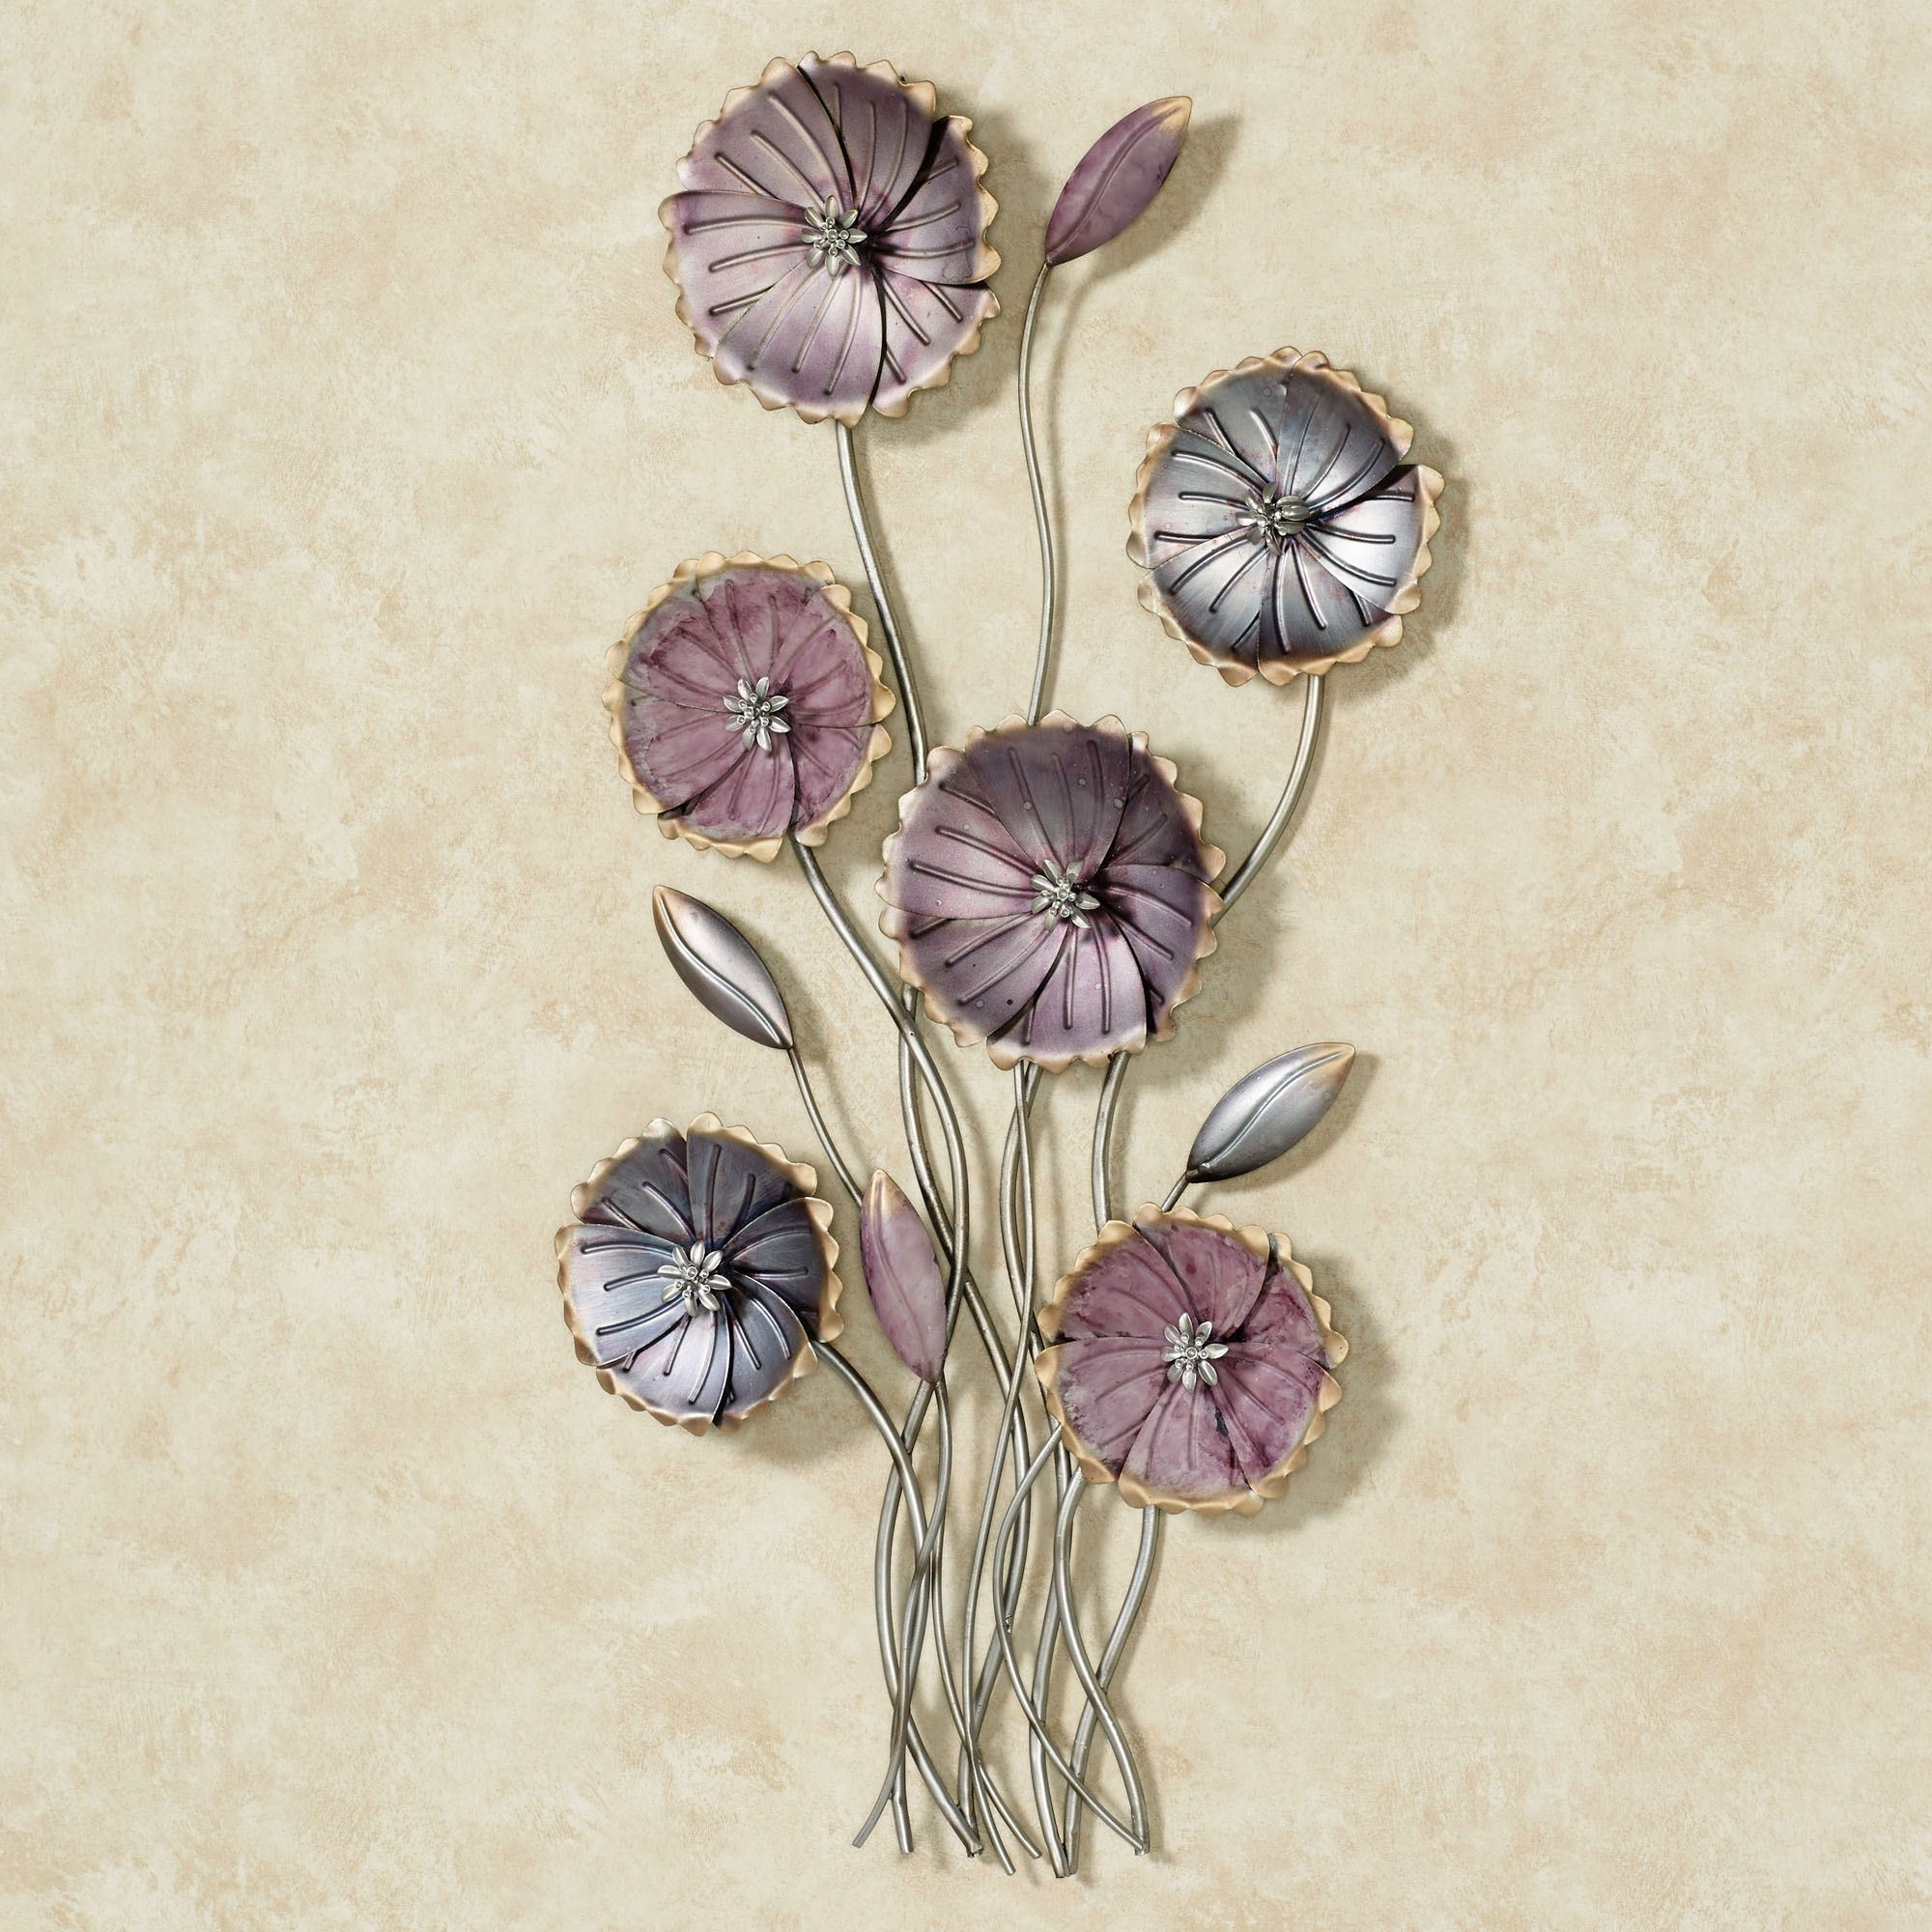 Metal Flowers Wall Art With Best And Newest Wooden Flower Wall Decor – Blogtipsworld (View 11 of 15)